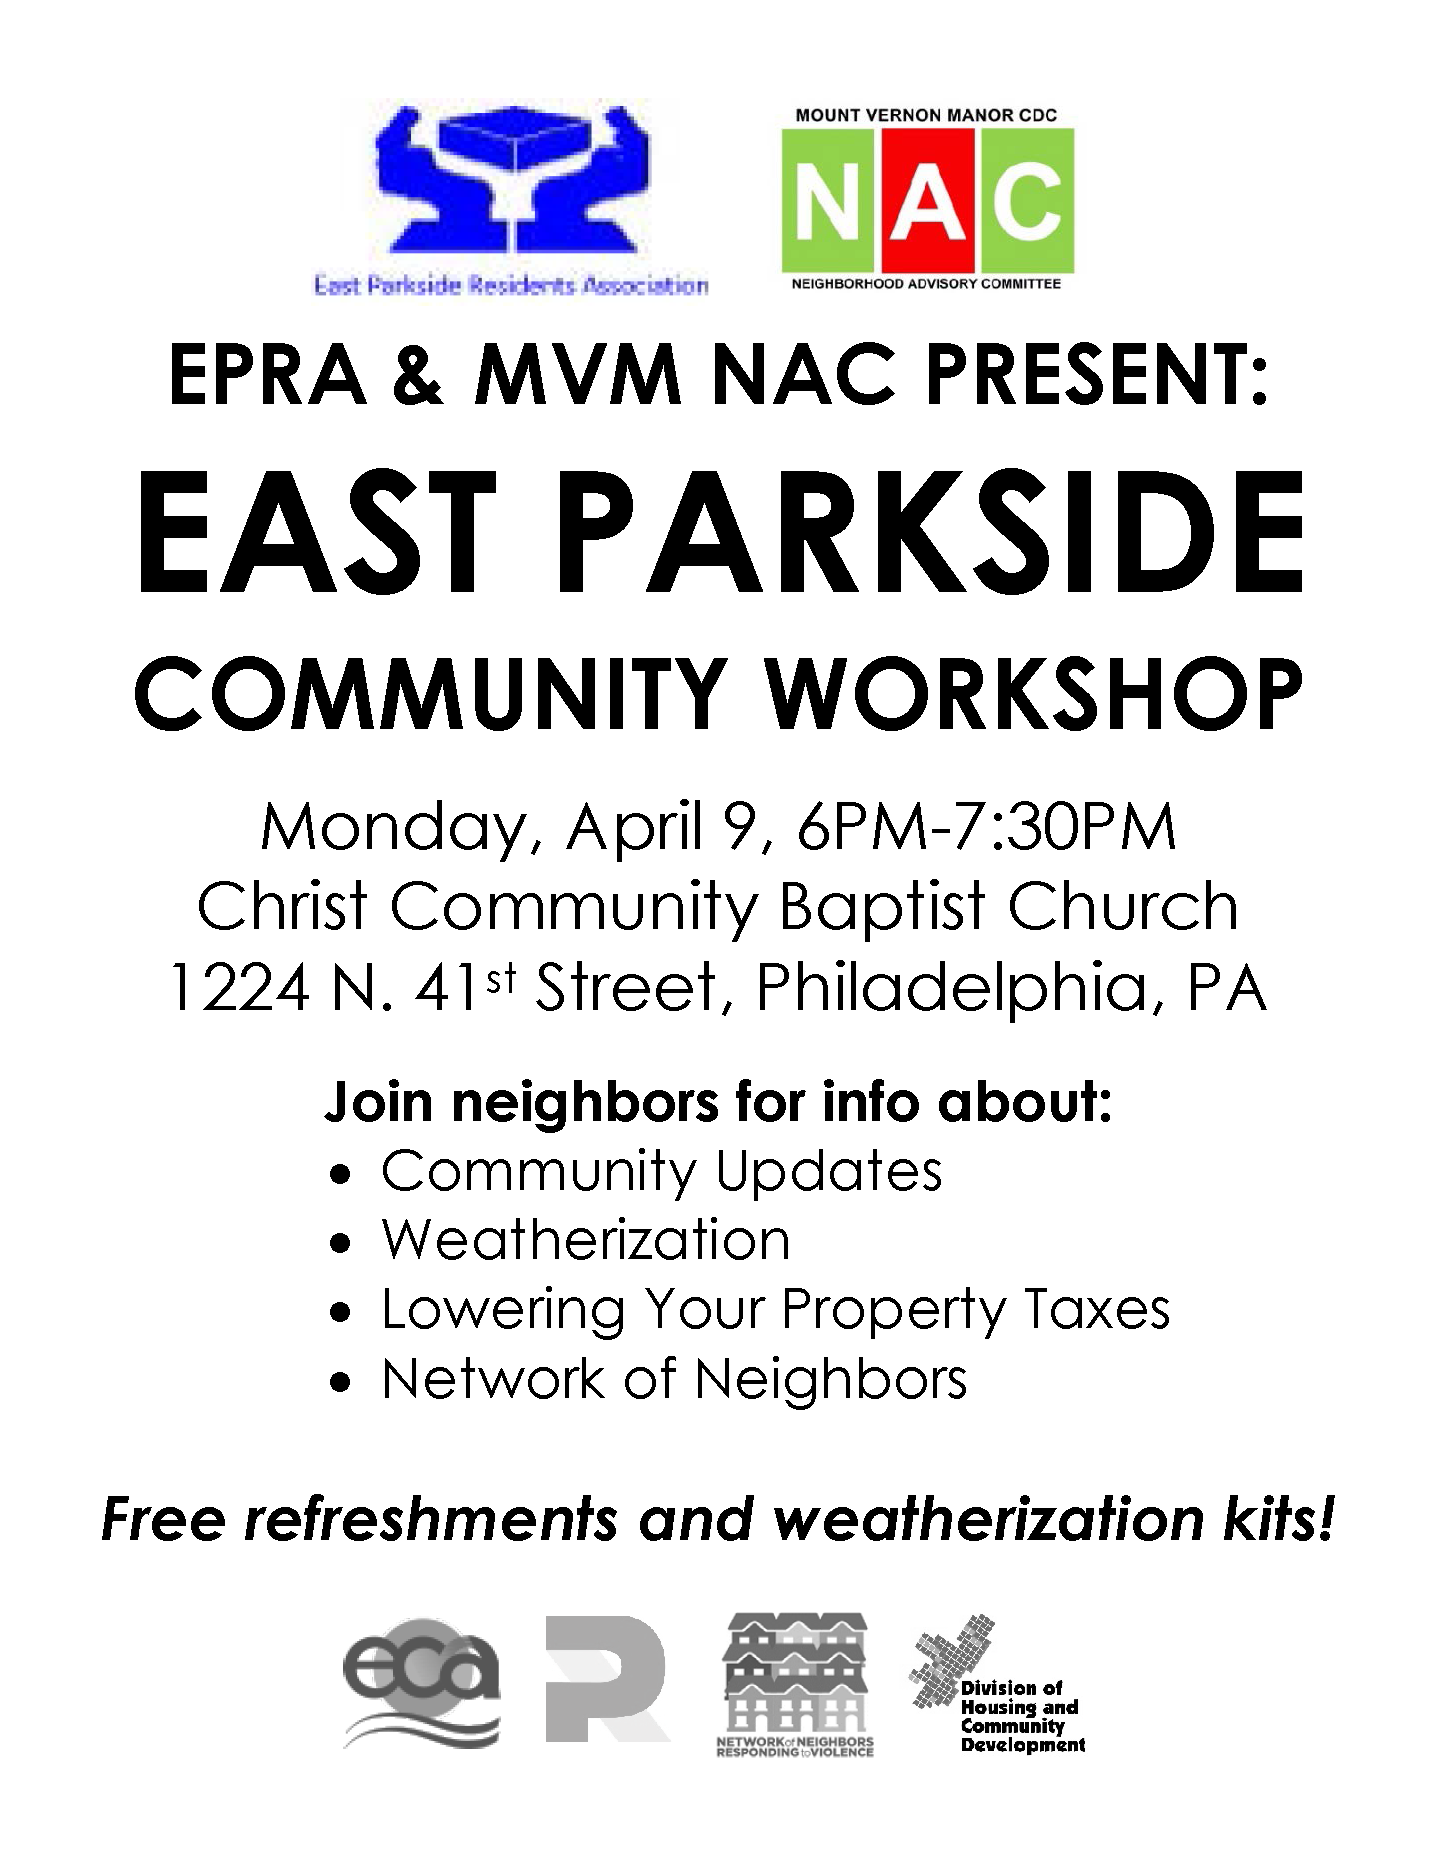 East Parkside Community Workshop April 9